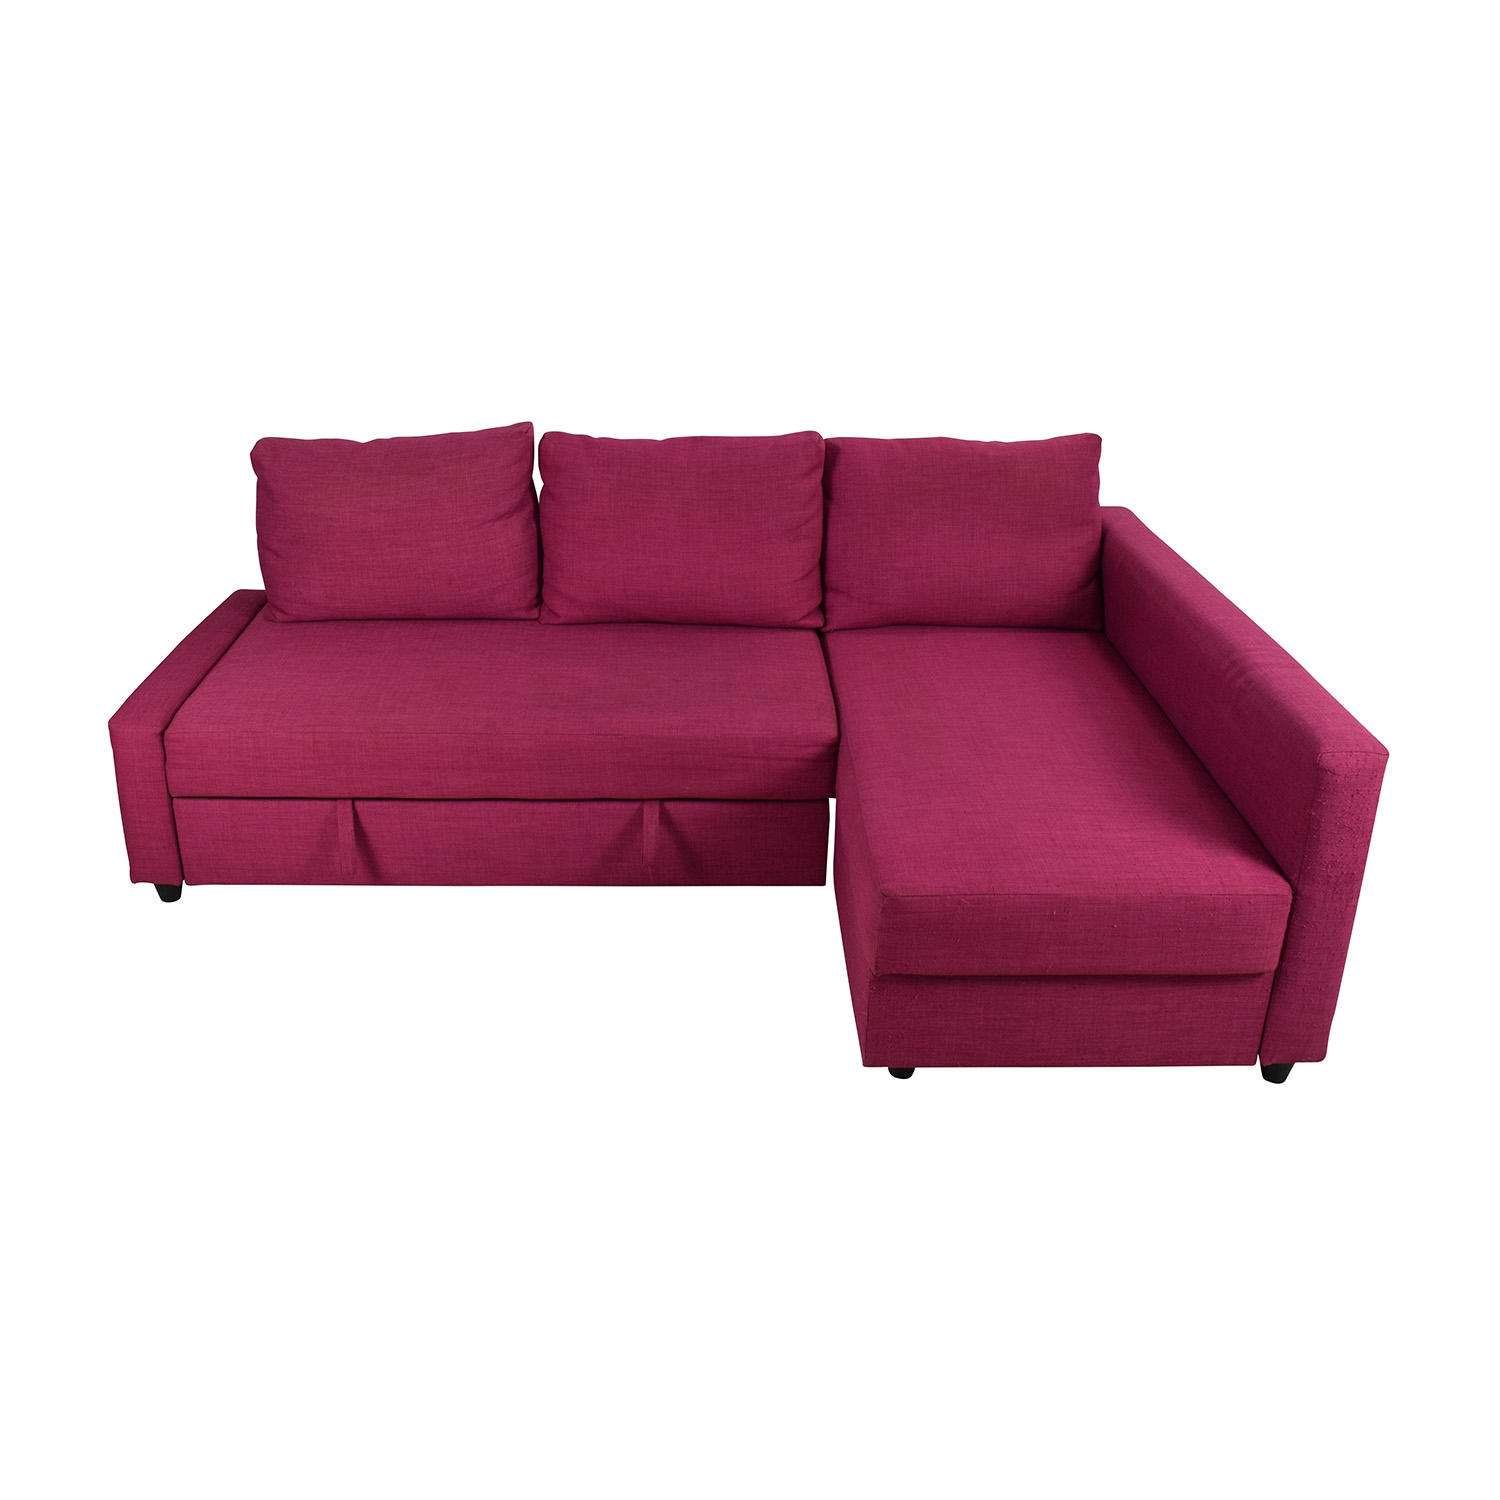 66 off ikea ikea friheten pink sleeper sofa sofas for Sofas